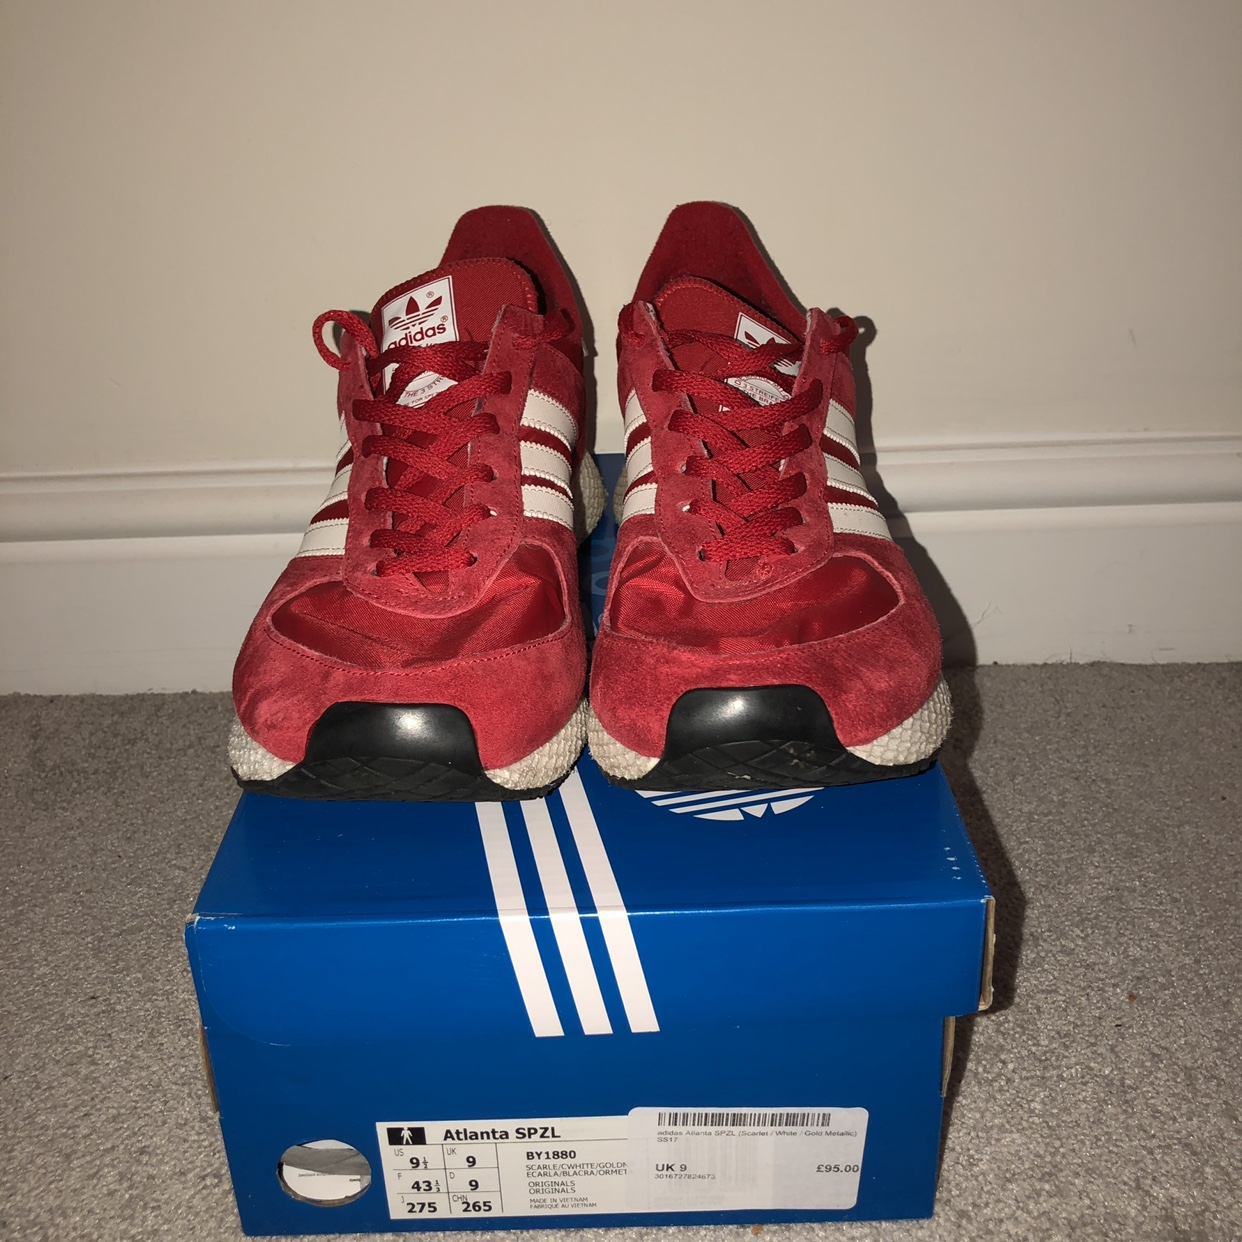 footwear popular stores cheapest price Adidas Atlanta Spezial - Size 9 - 8/10 Condition -... - Depop